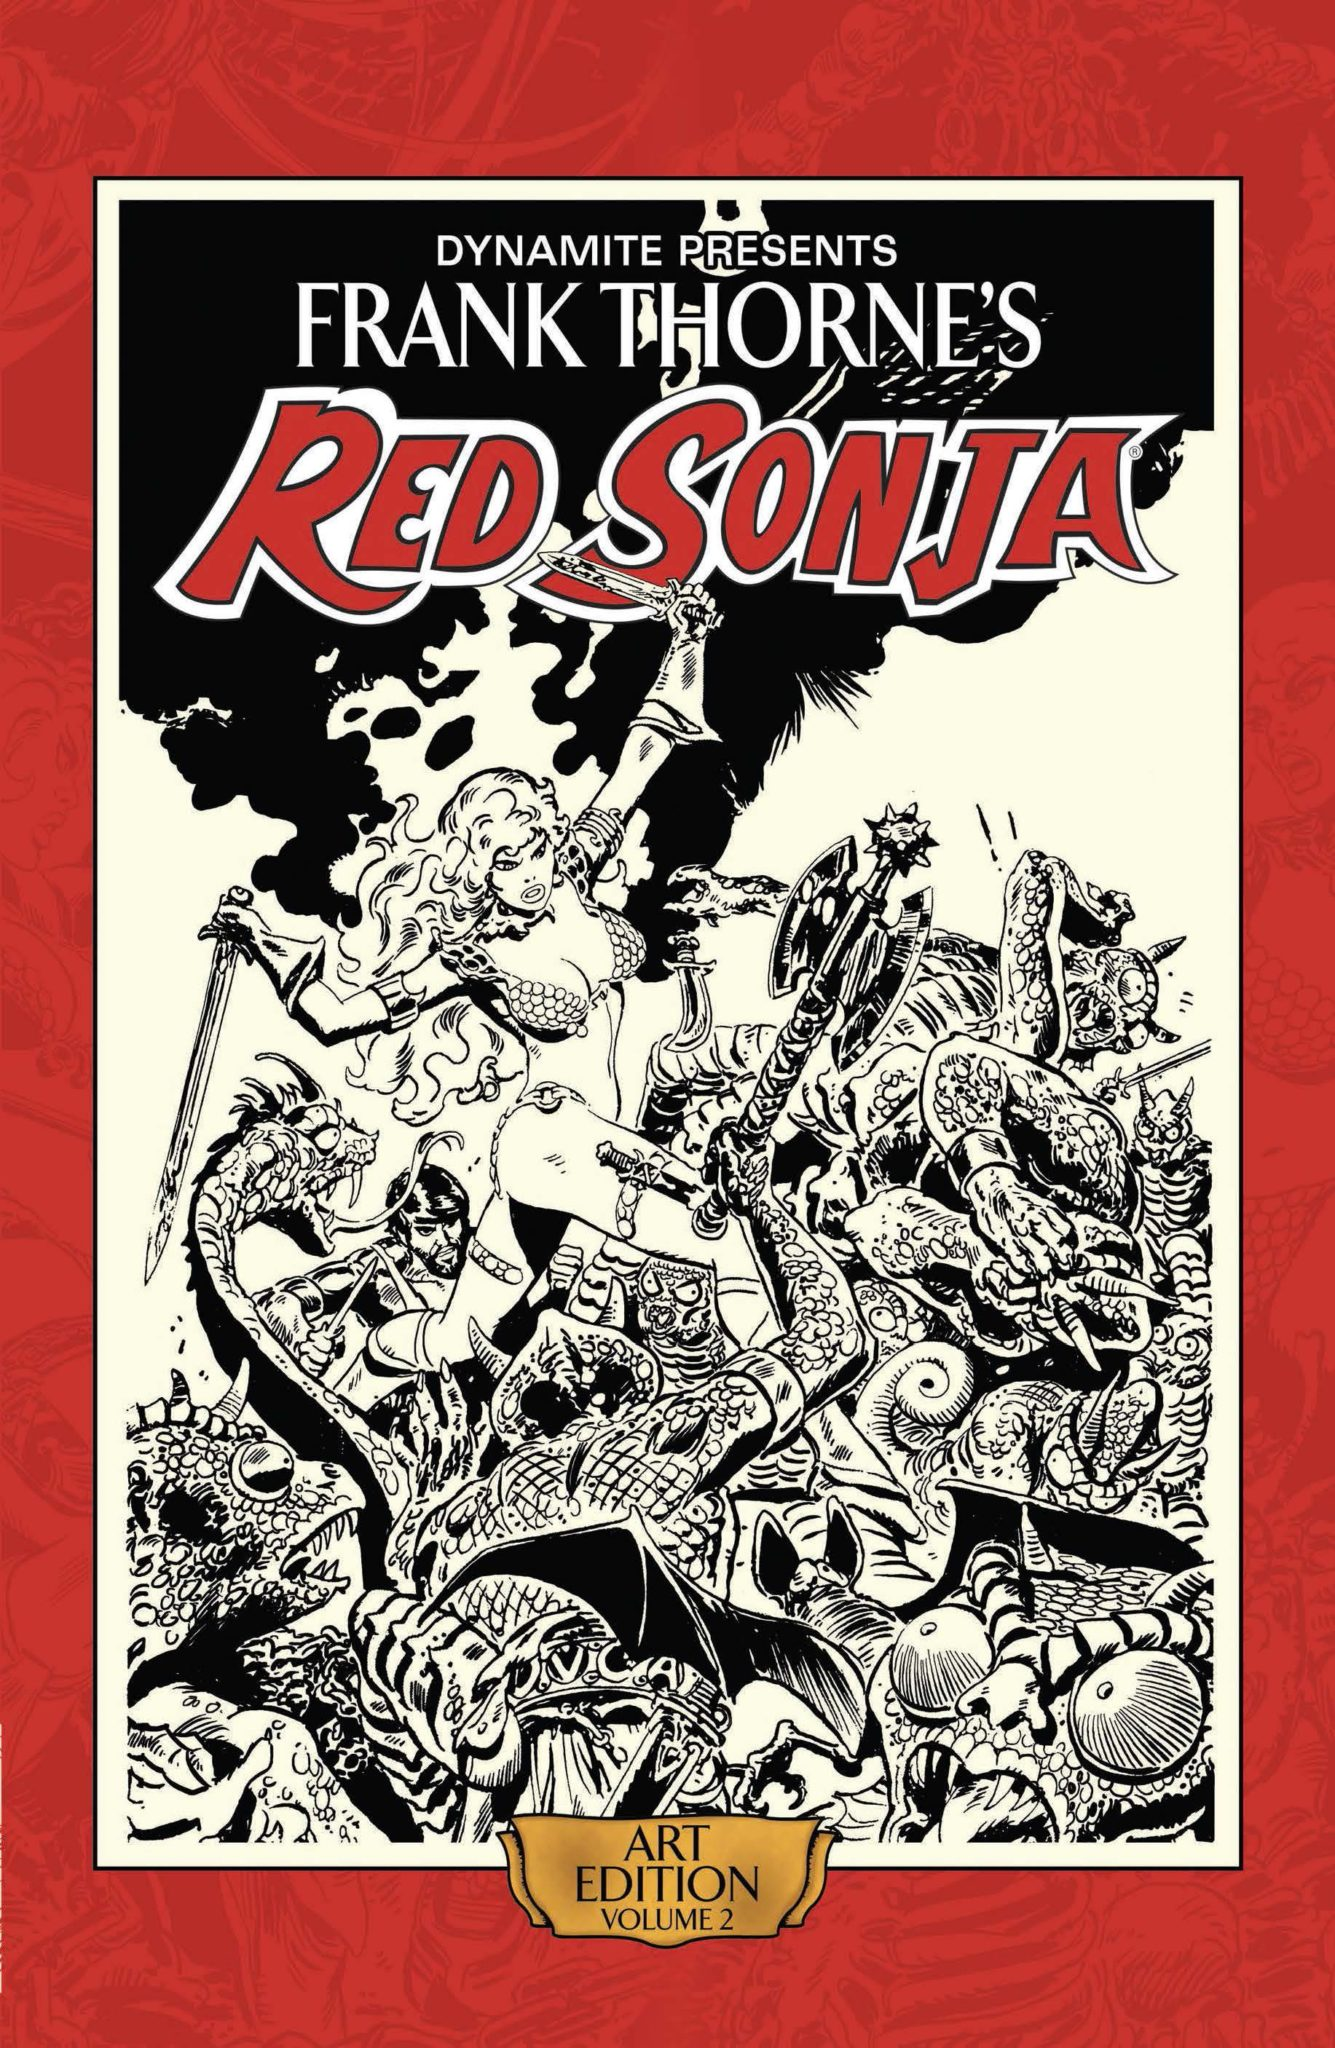 Review   Frank Thorne's Red Sonja Art Edition Vol 2